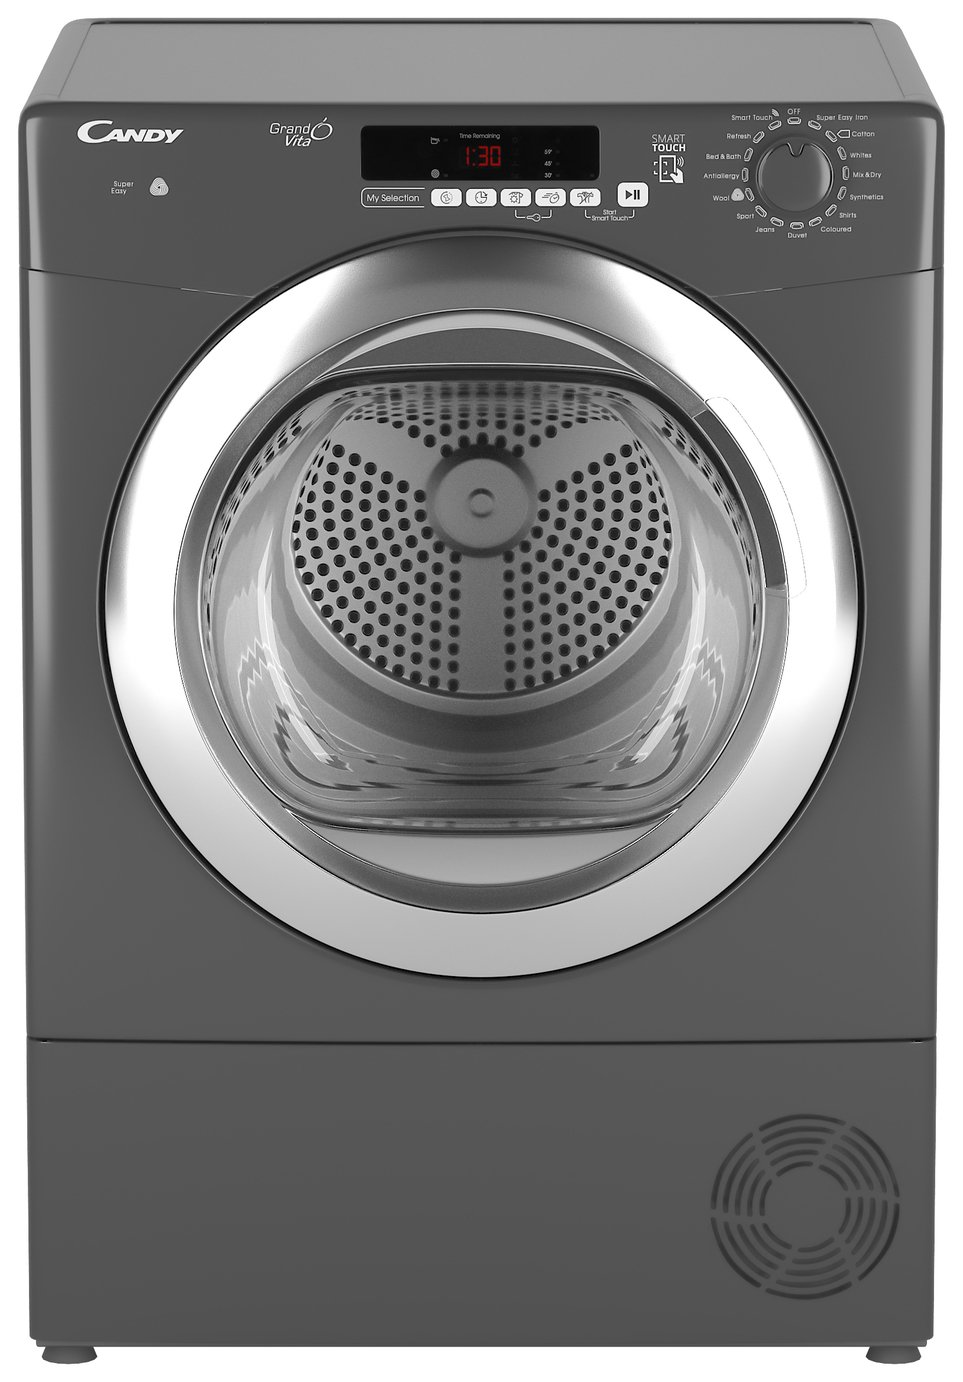 Candy GVSC9DCRG 9KG Condenser Tumble Dryer- Graphite from Candy